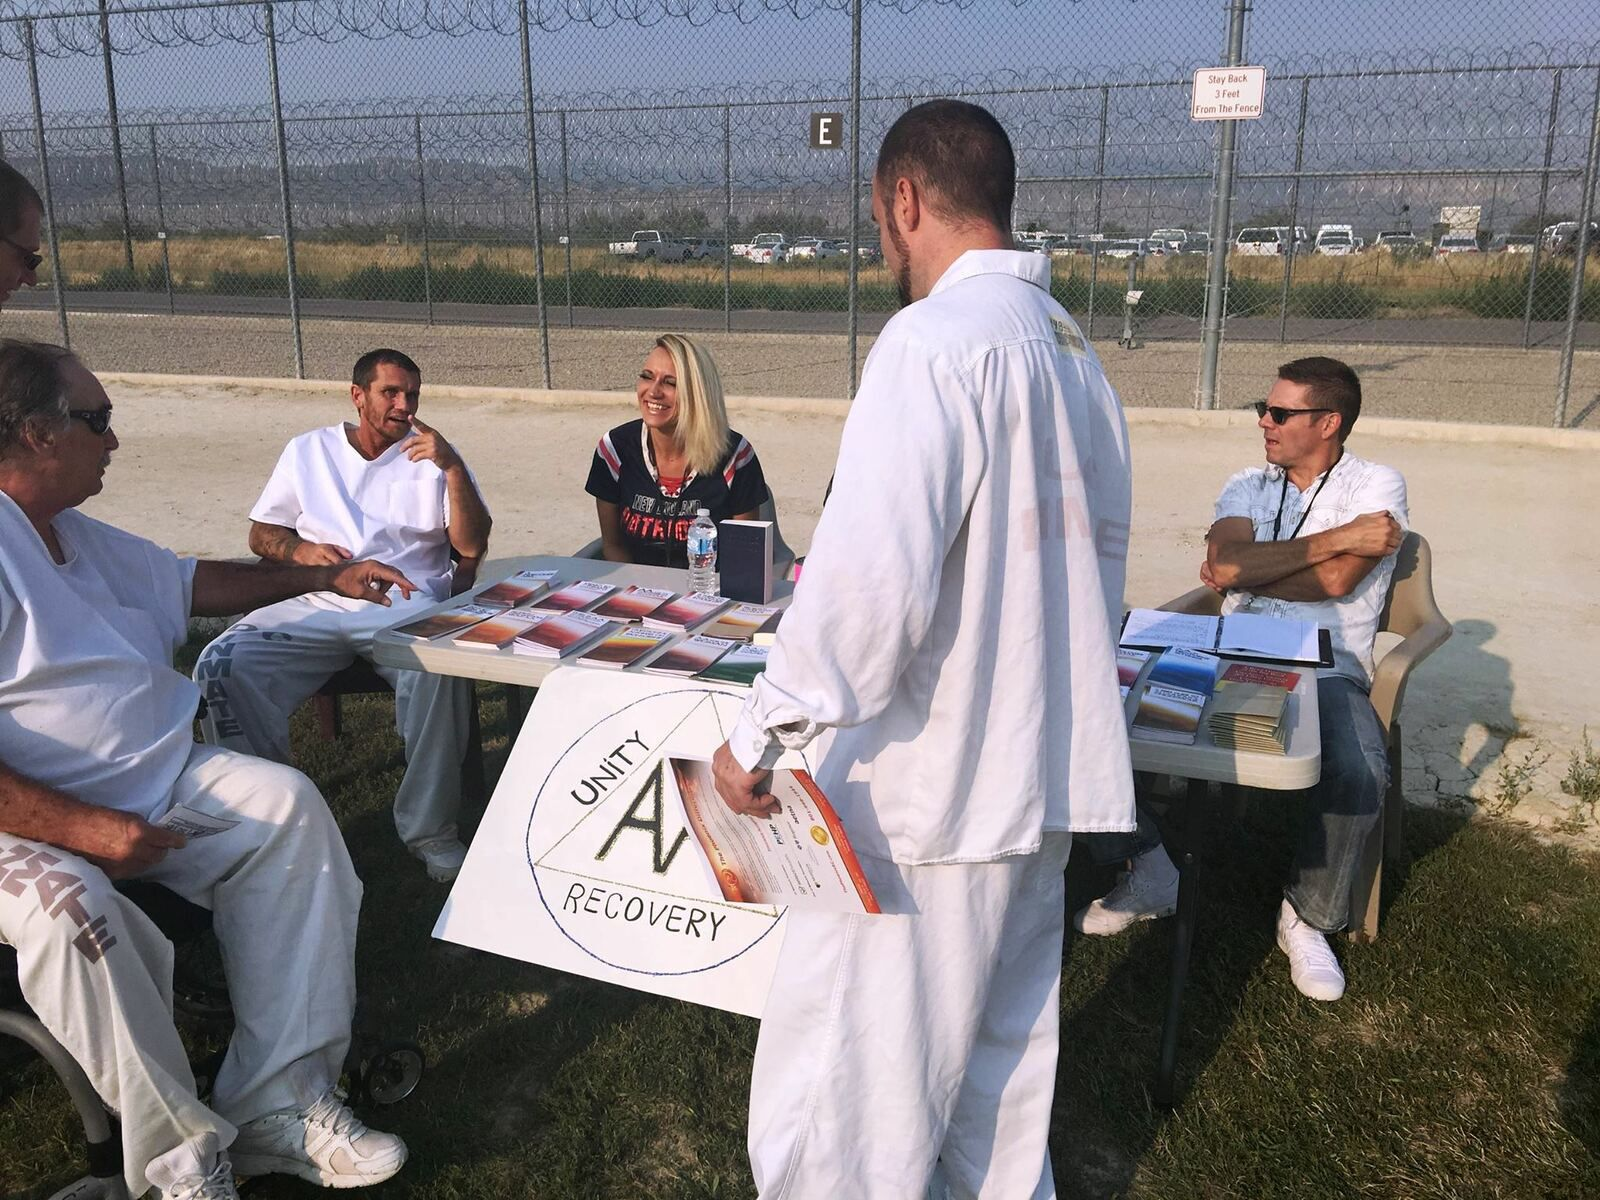 National Recovery Day Septembre 2017 (Utah State Prison - USA)